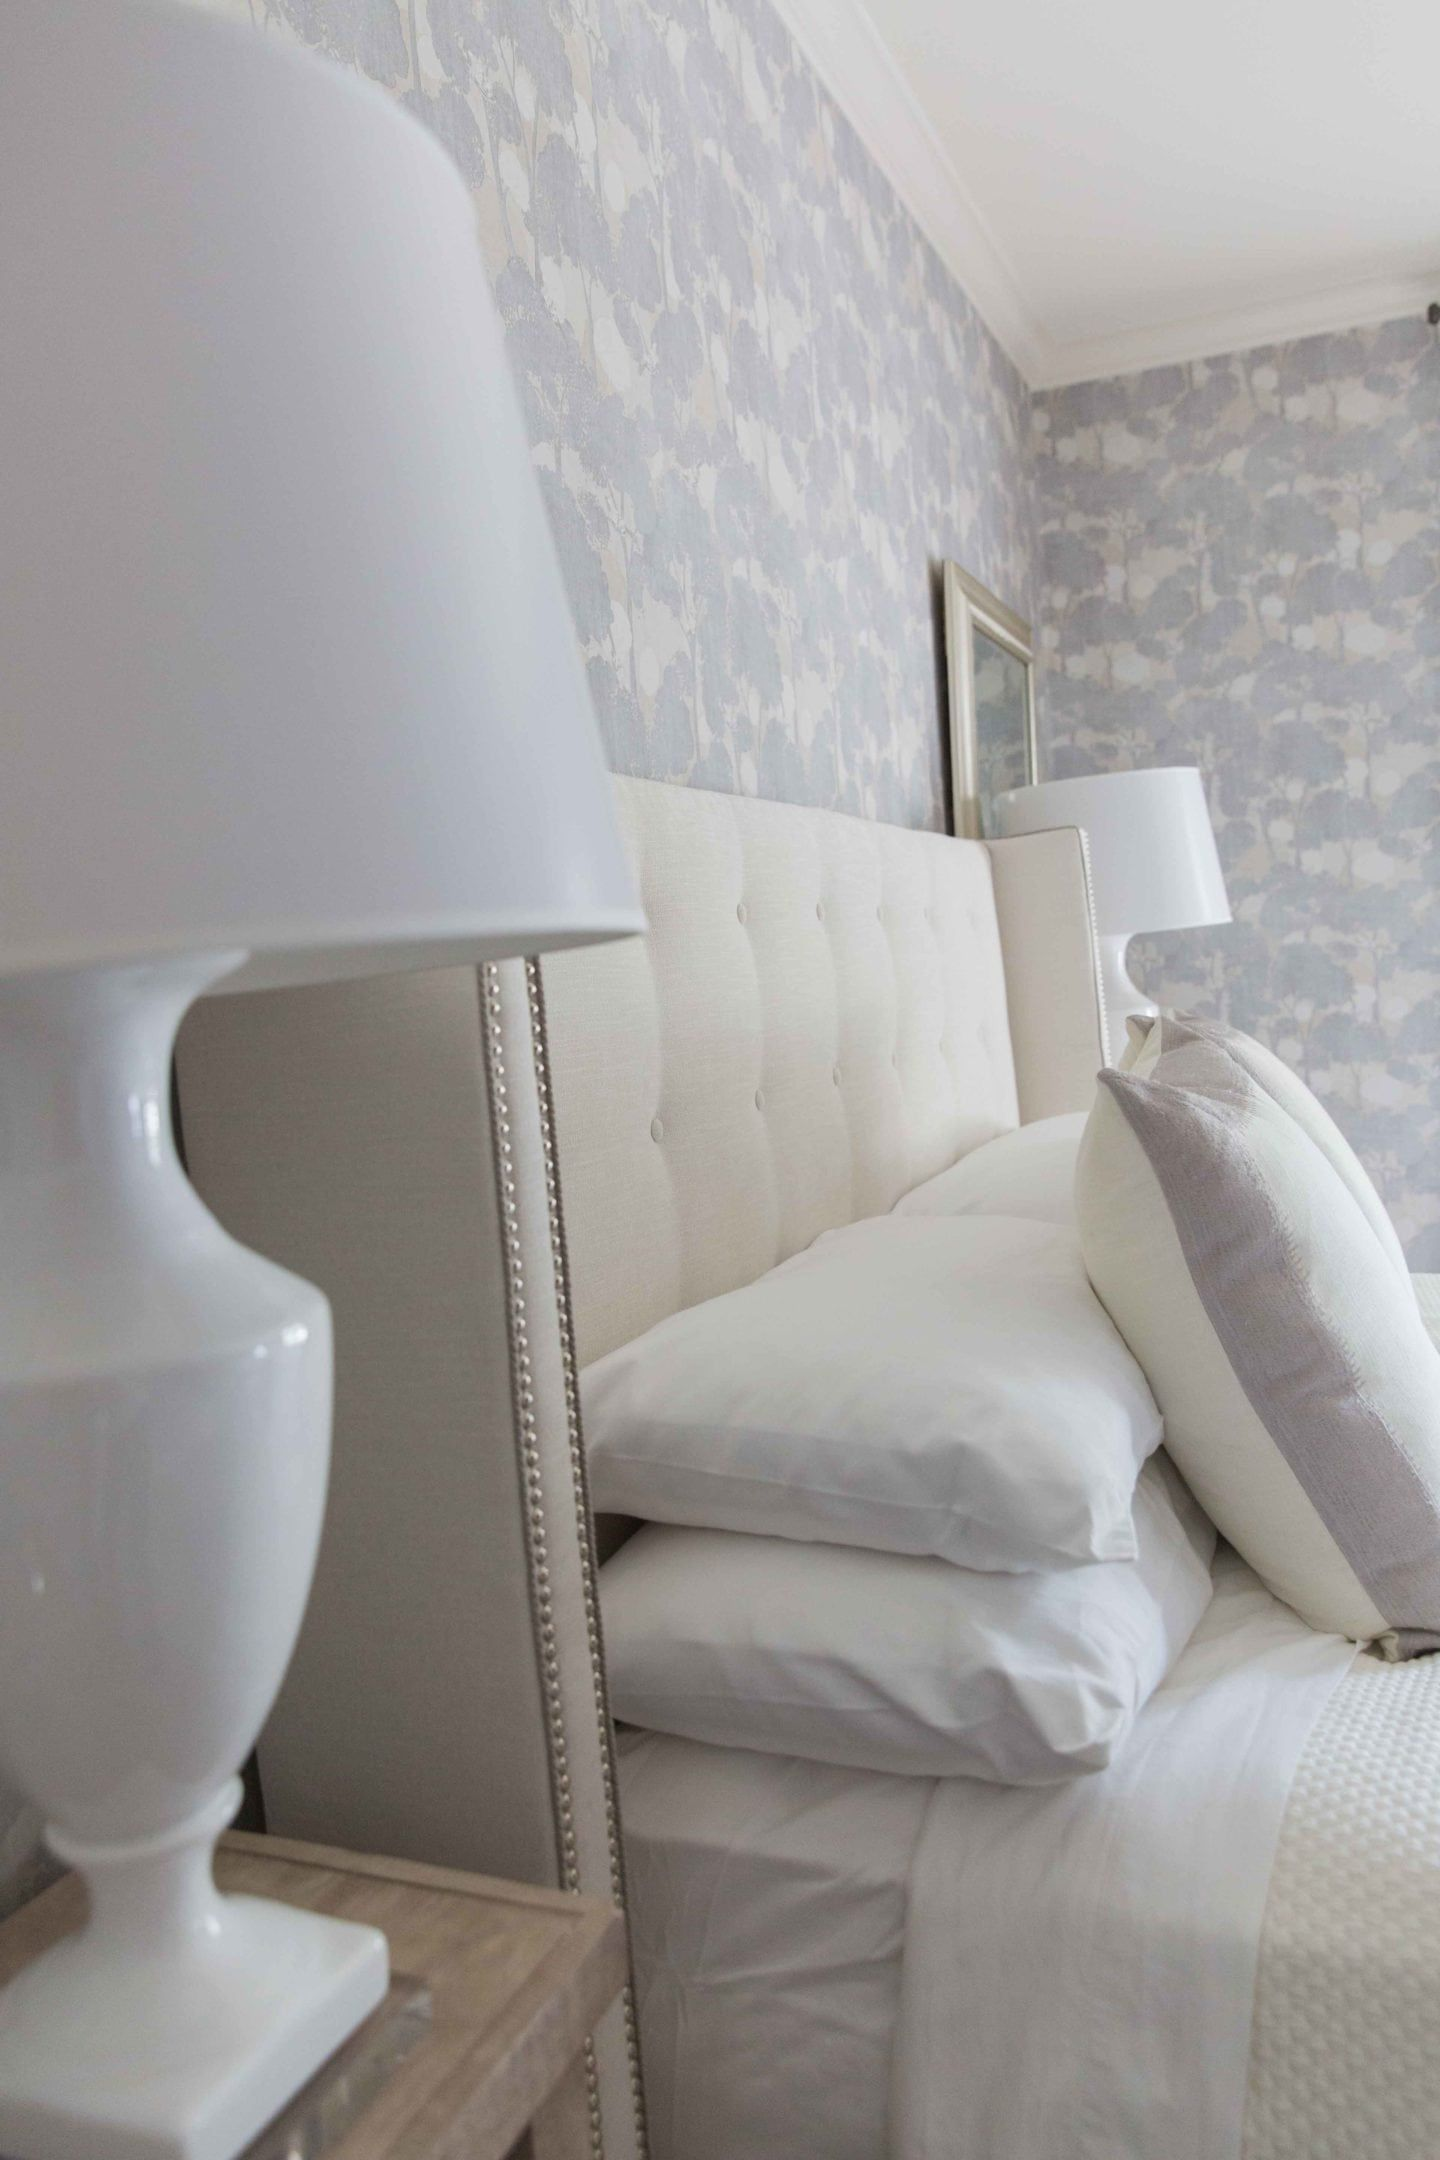 Bedroom Wallpaper Ideas Light Purple And Gray Wallpaper And White Lamps With Ivory Headb Wallpaper Design For Bedroom Bedroom Interior Bedroom Wallpaper White Bedroom wallpaper light grey